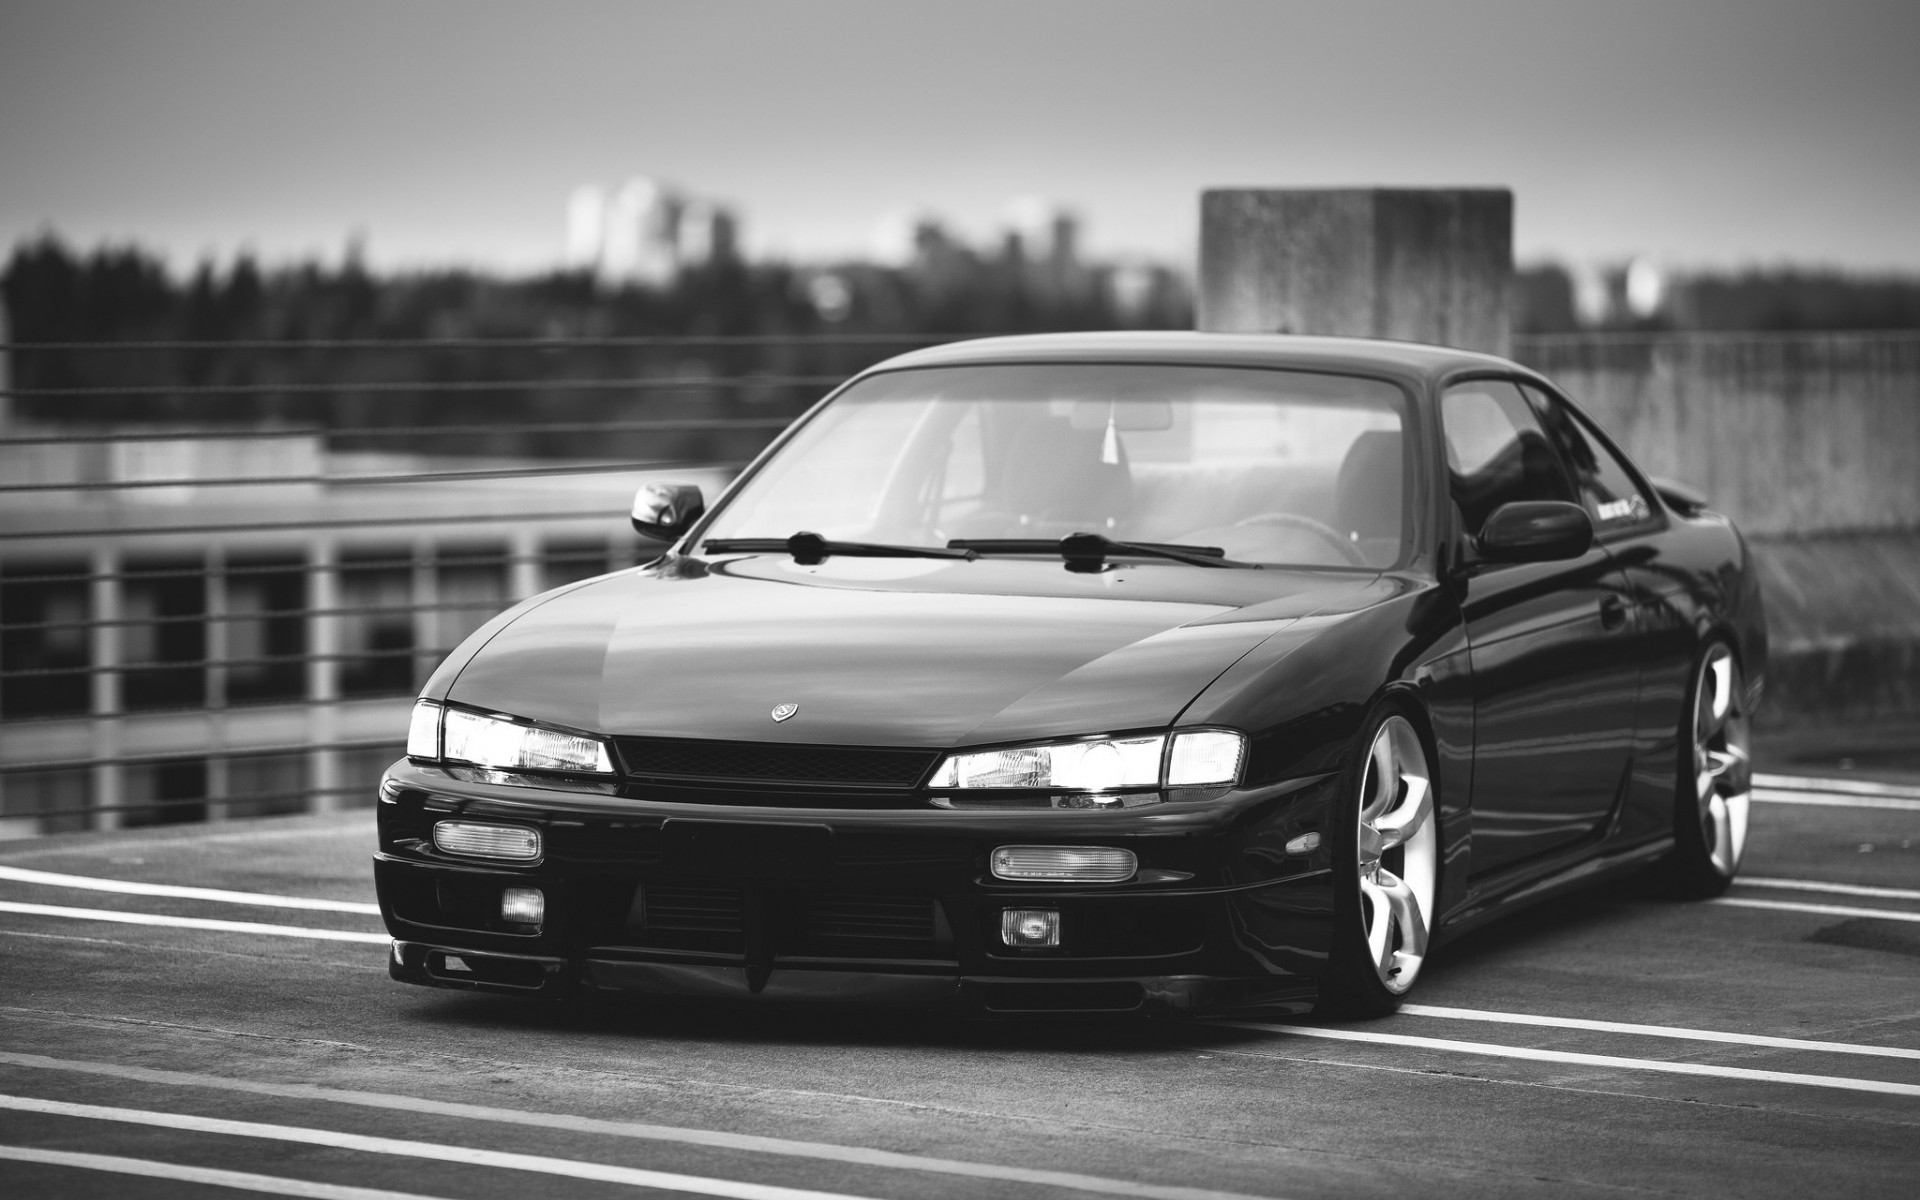 1920x1200 - Nissan Silvia S14 Wallpapers 29